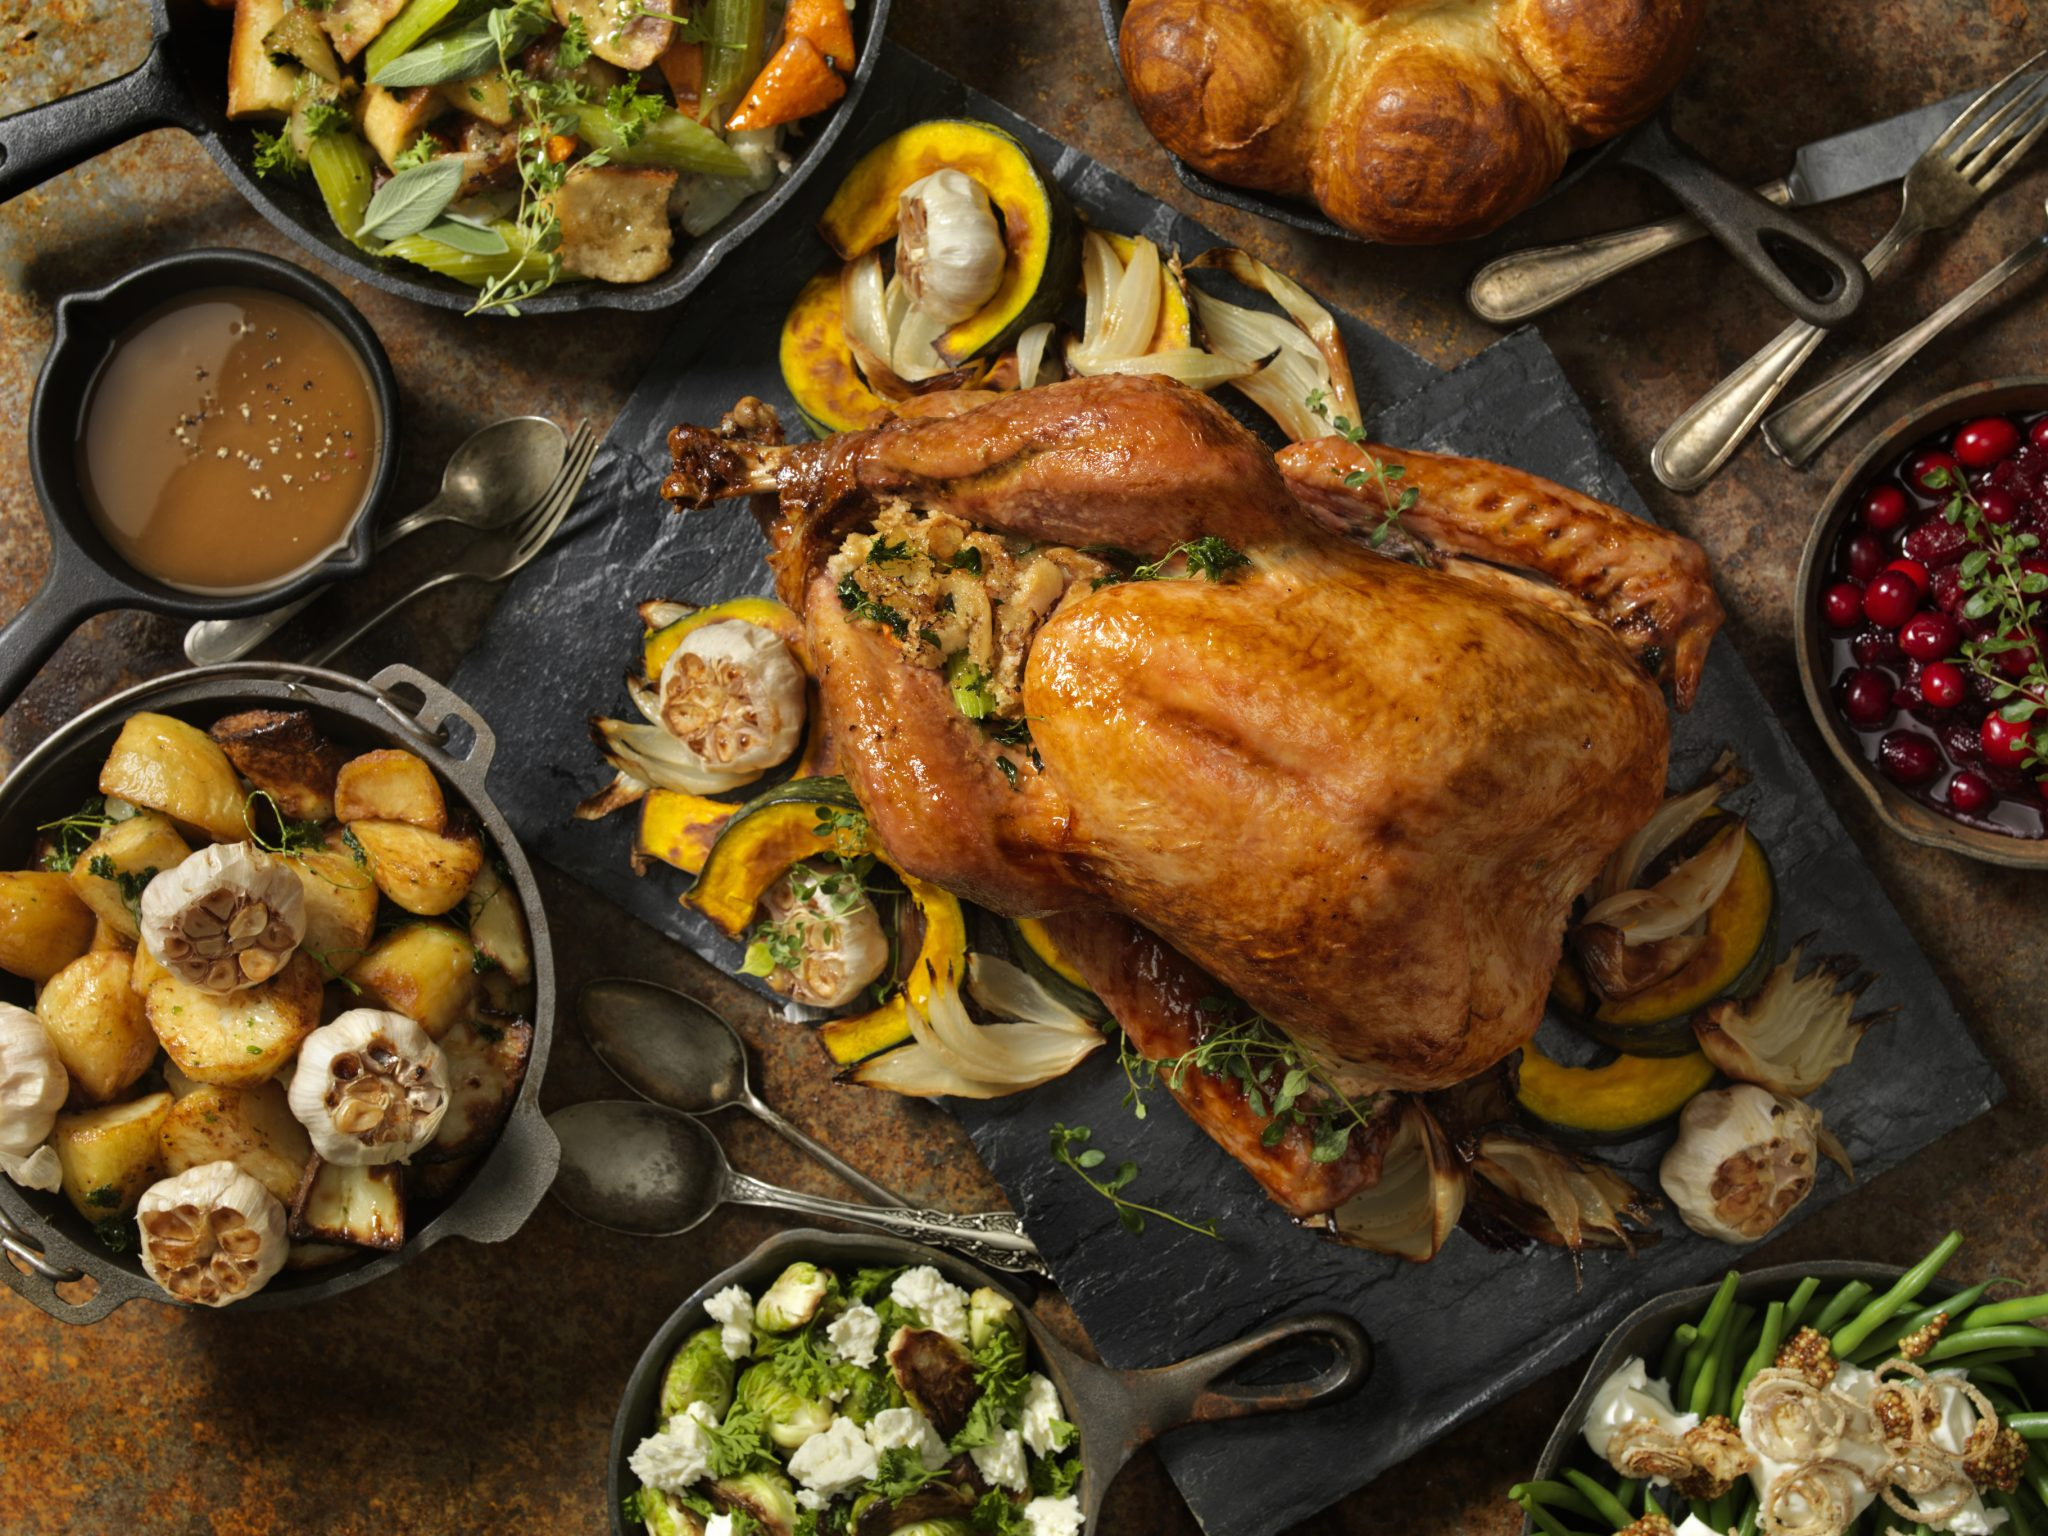 9 tips for a zero-waste, ethical and eco-friendly family Christmas dinner